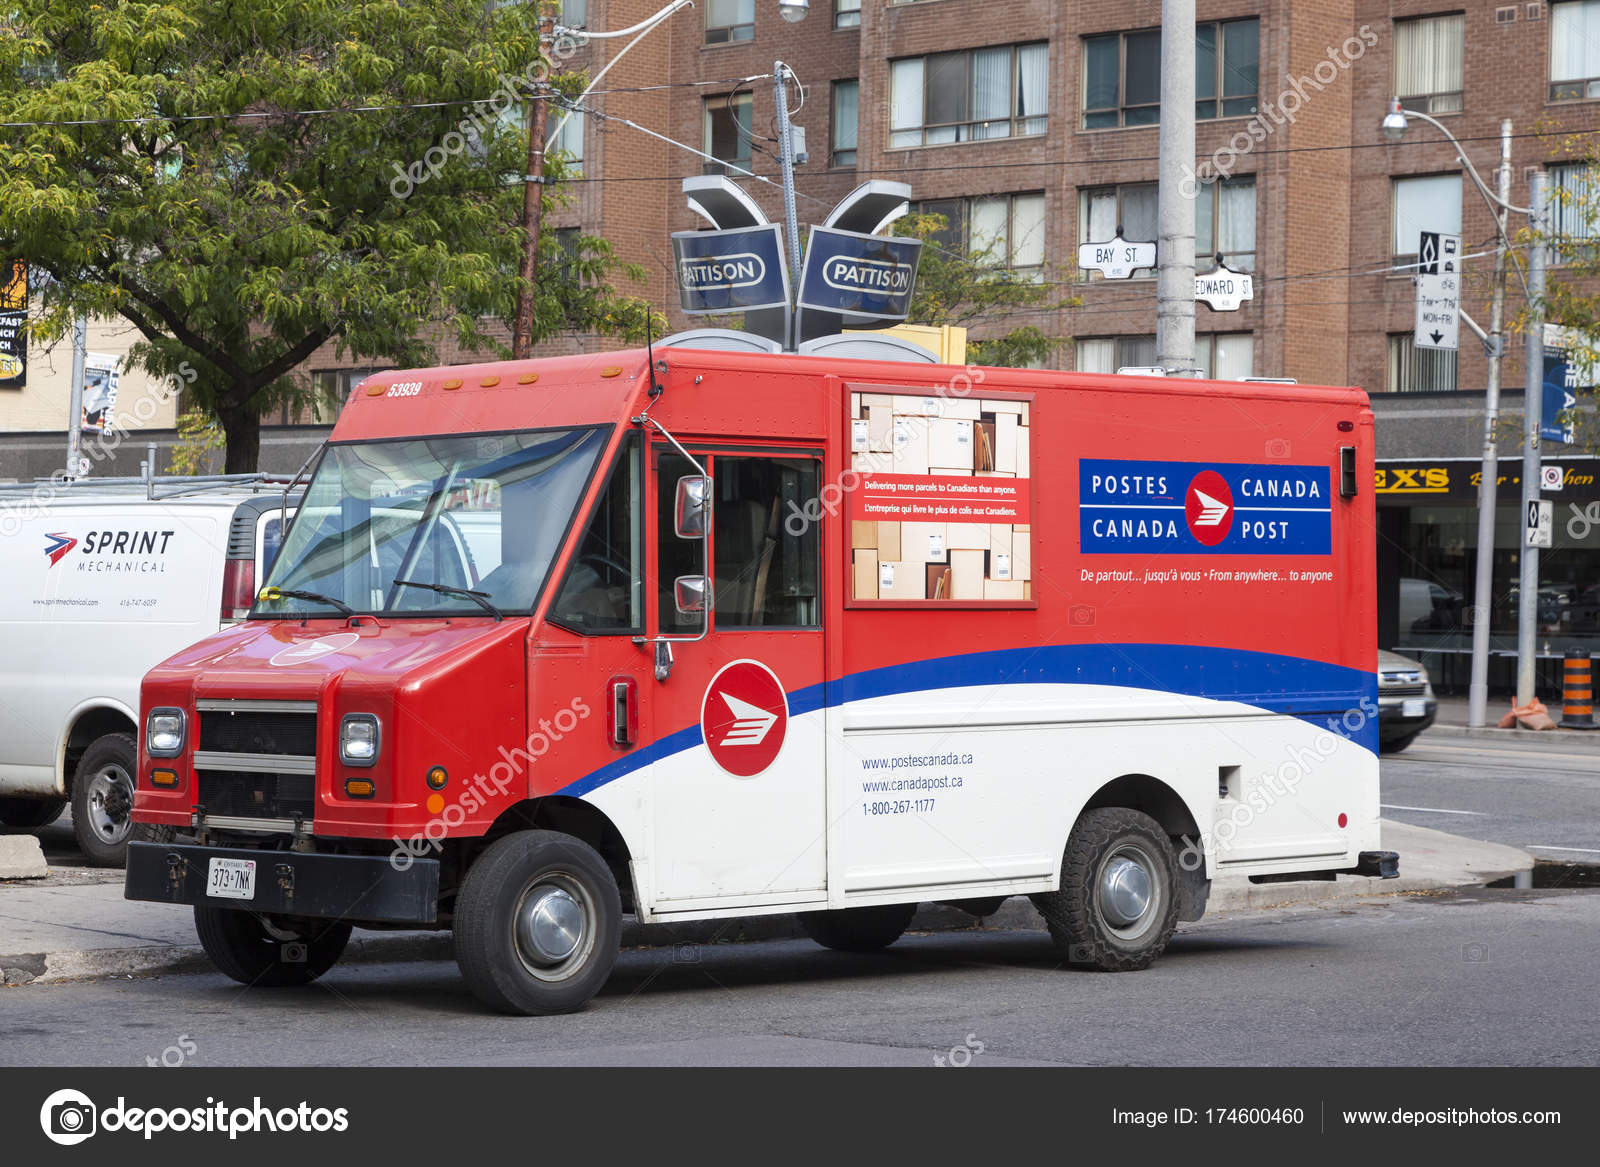 canada post delivery hours грузовик доставки почты post канада стоковое 17145 | depositphotos 174600460 stock photo canada post mail delivery truck